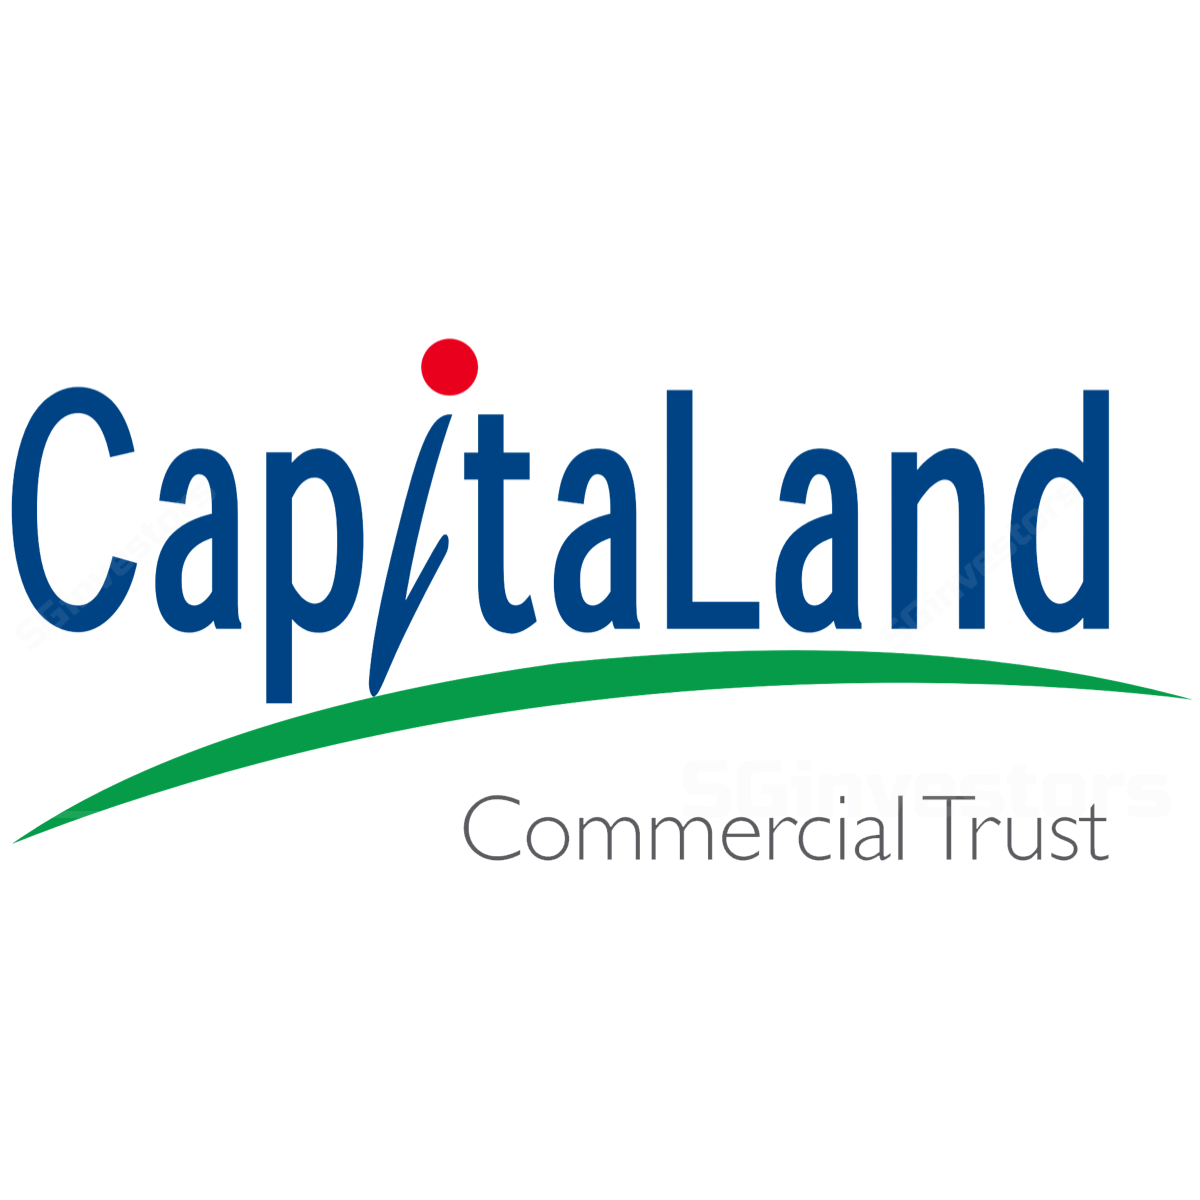 CapitaLand Commercial Trust - DBS Vickers 2017-10-23: Quality To Rise To The Top